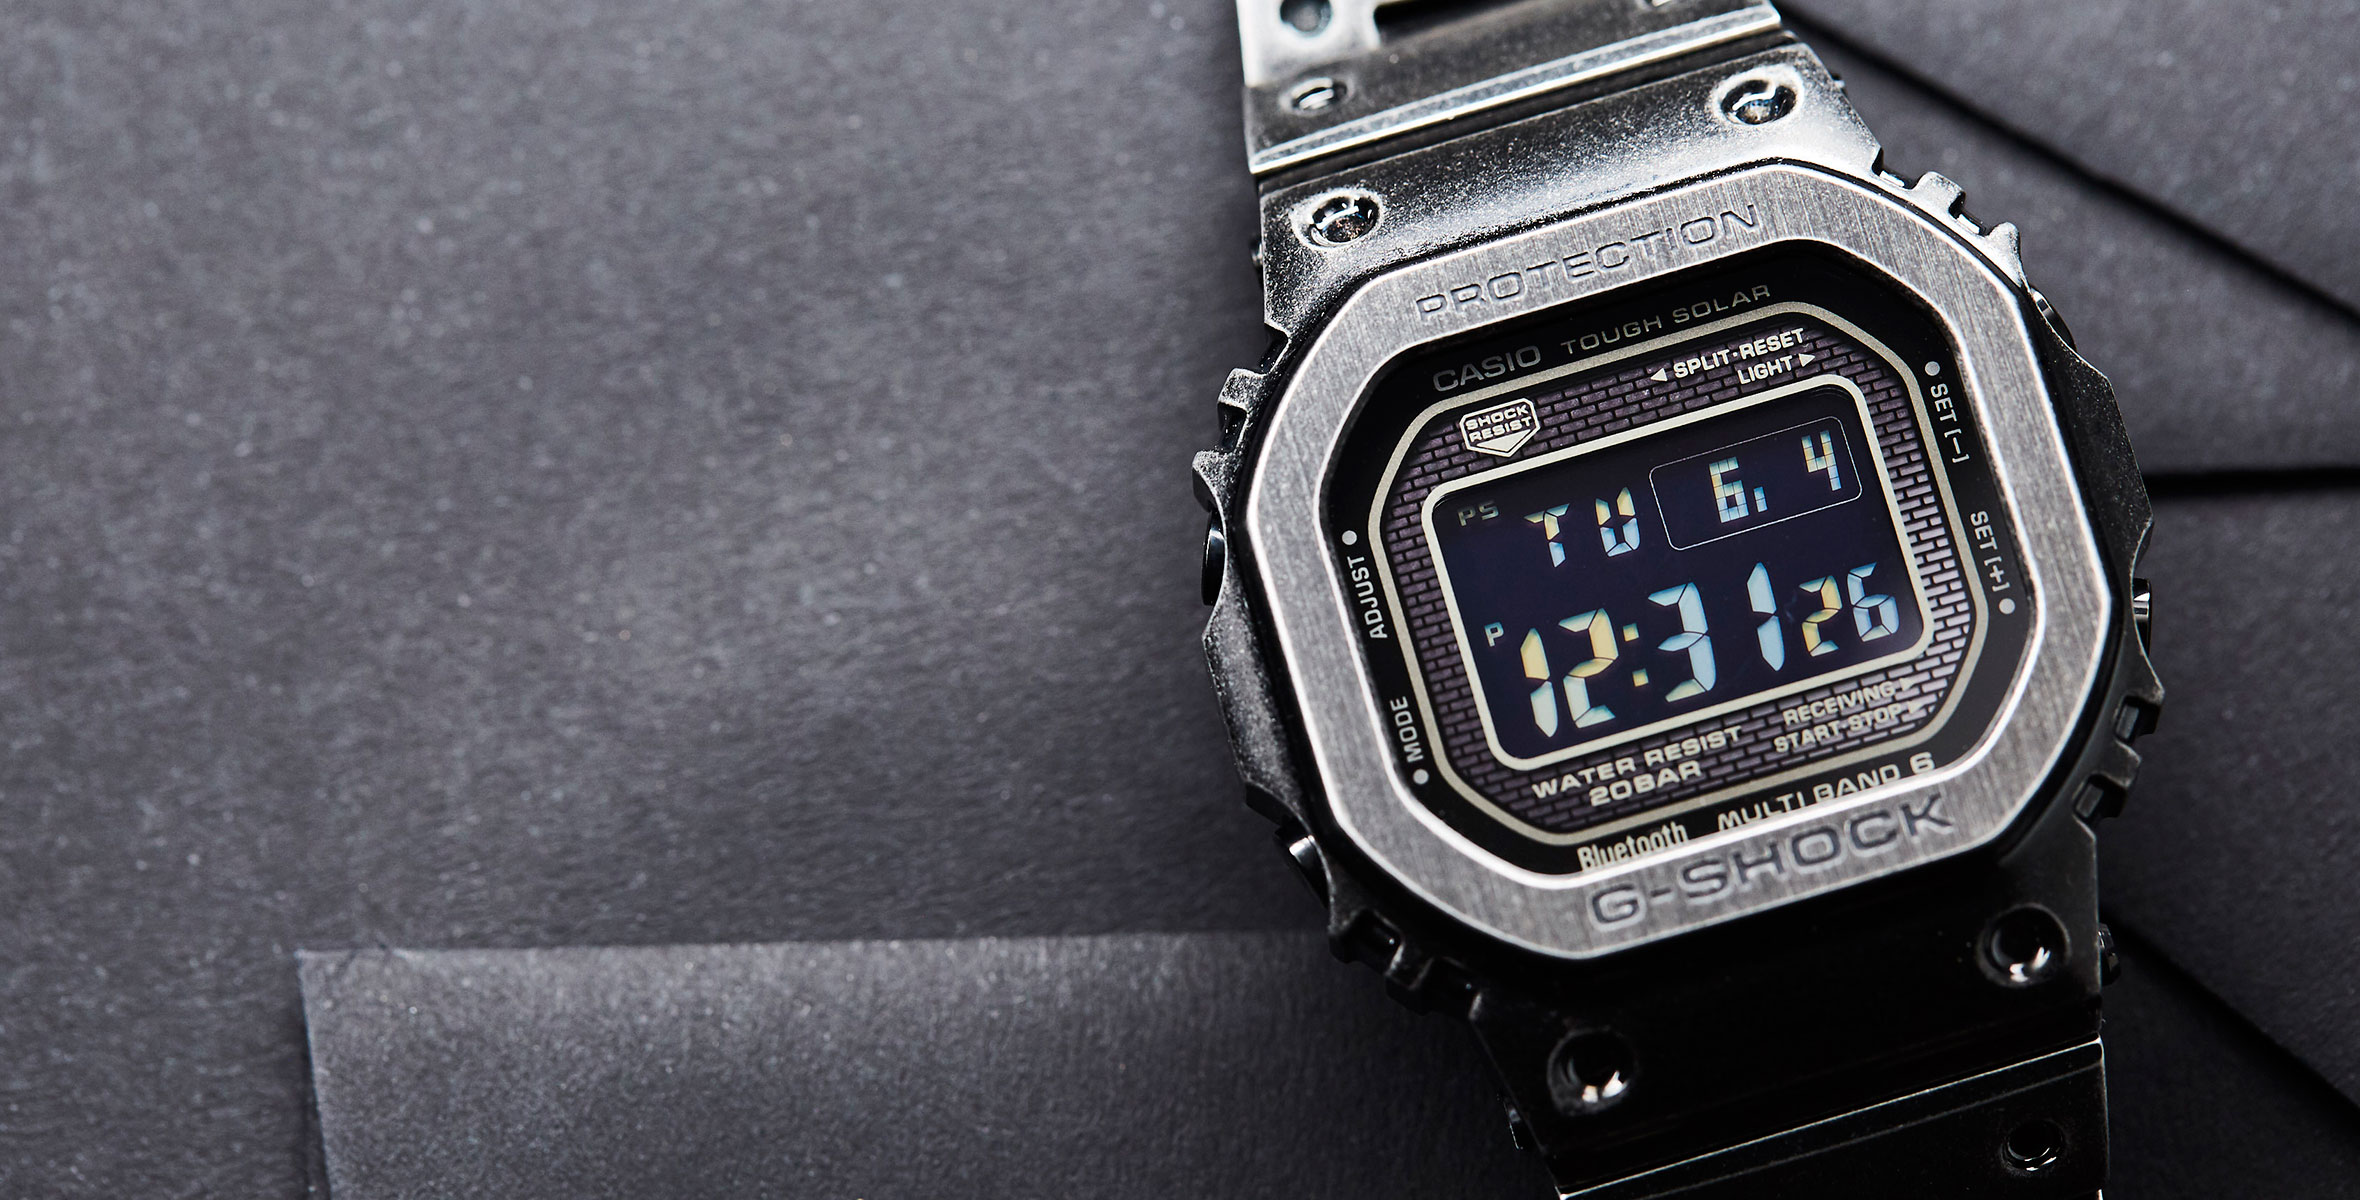 HANDS-ON: Full metal jacket – the Casio G-Shock GMW-B5000V